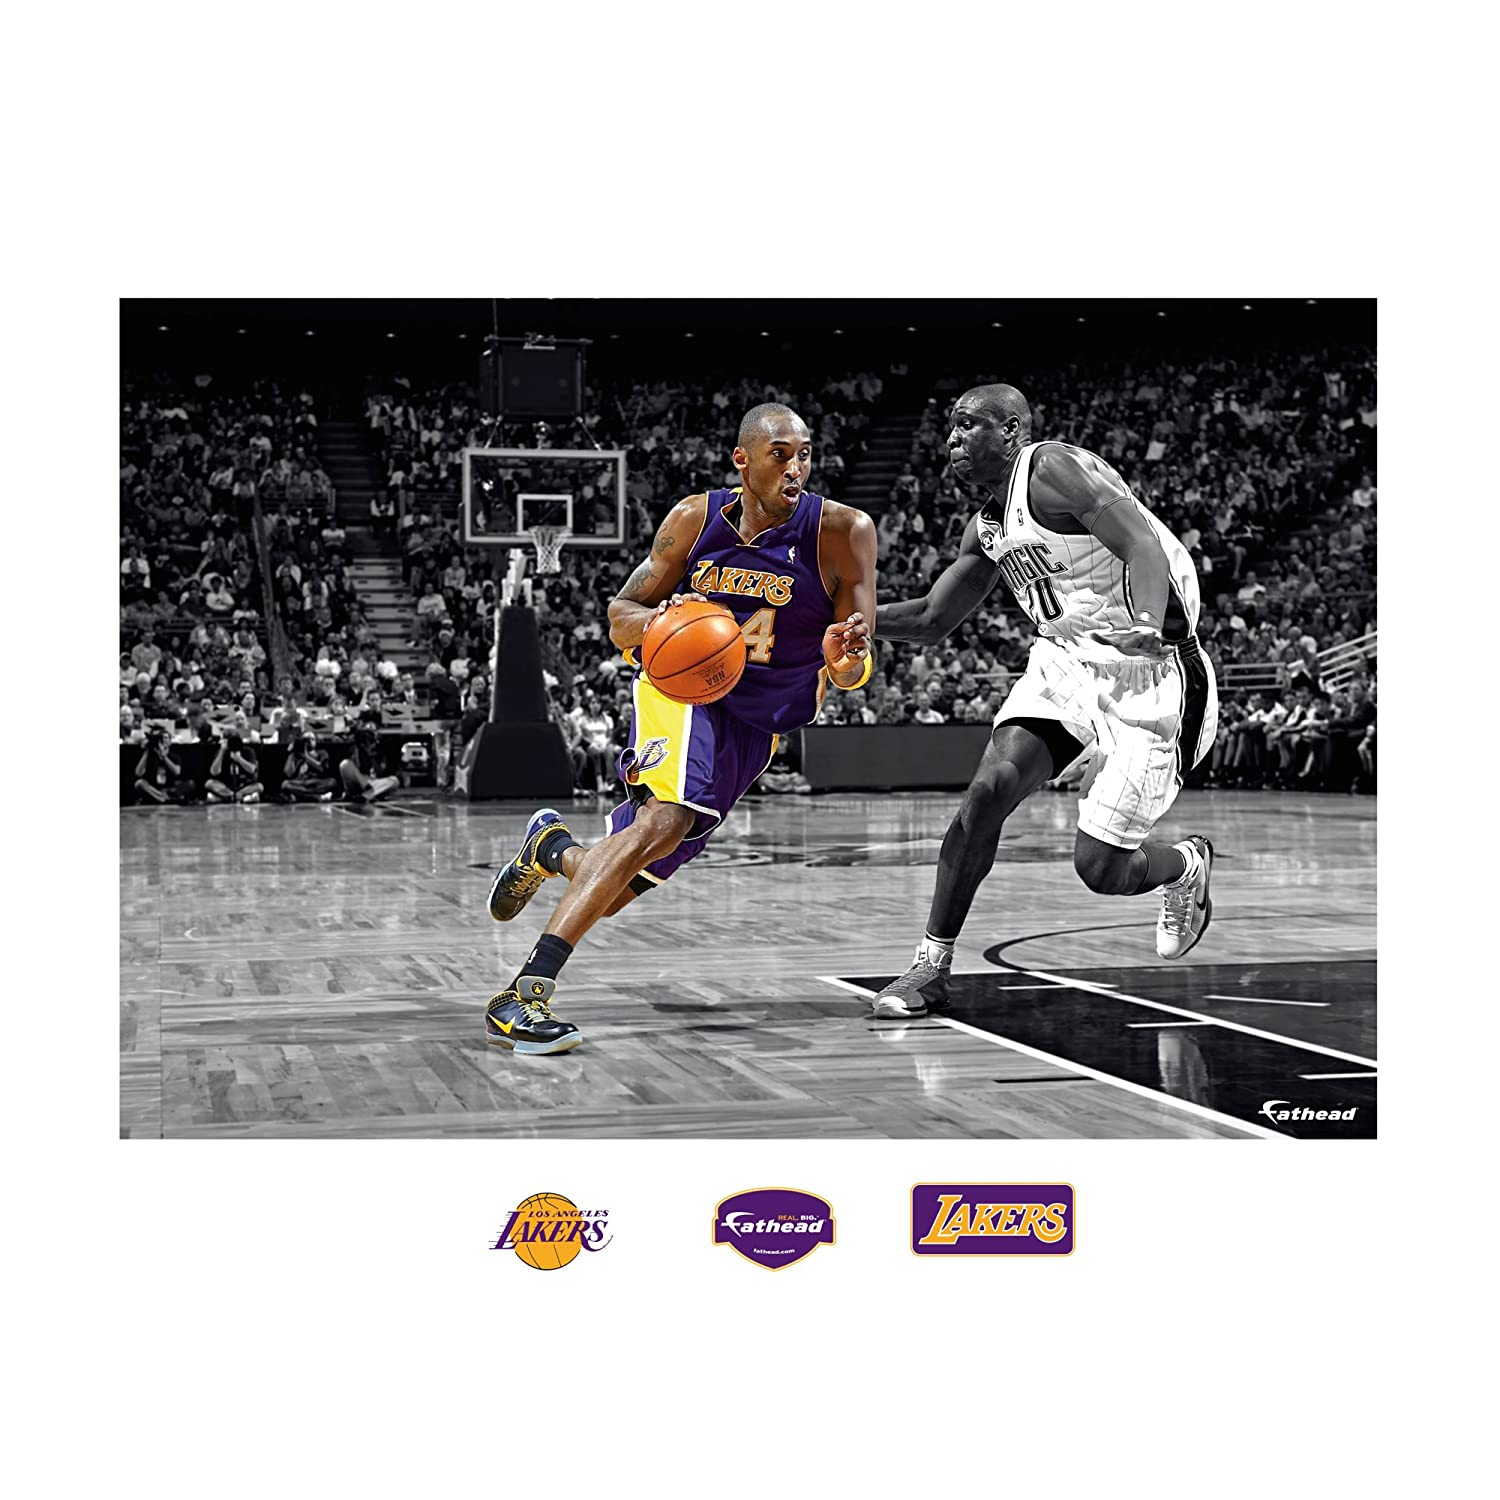 amazon com nba los angeles lakers kobe bryant mural wall graphic amazon com nba los angeles lakers kobe bryant mural wall graphic sports fan wall banners sports outdoors